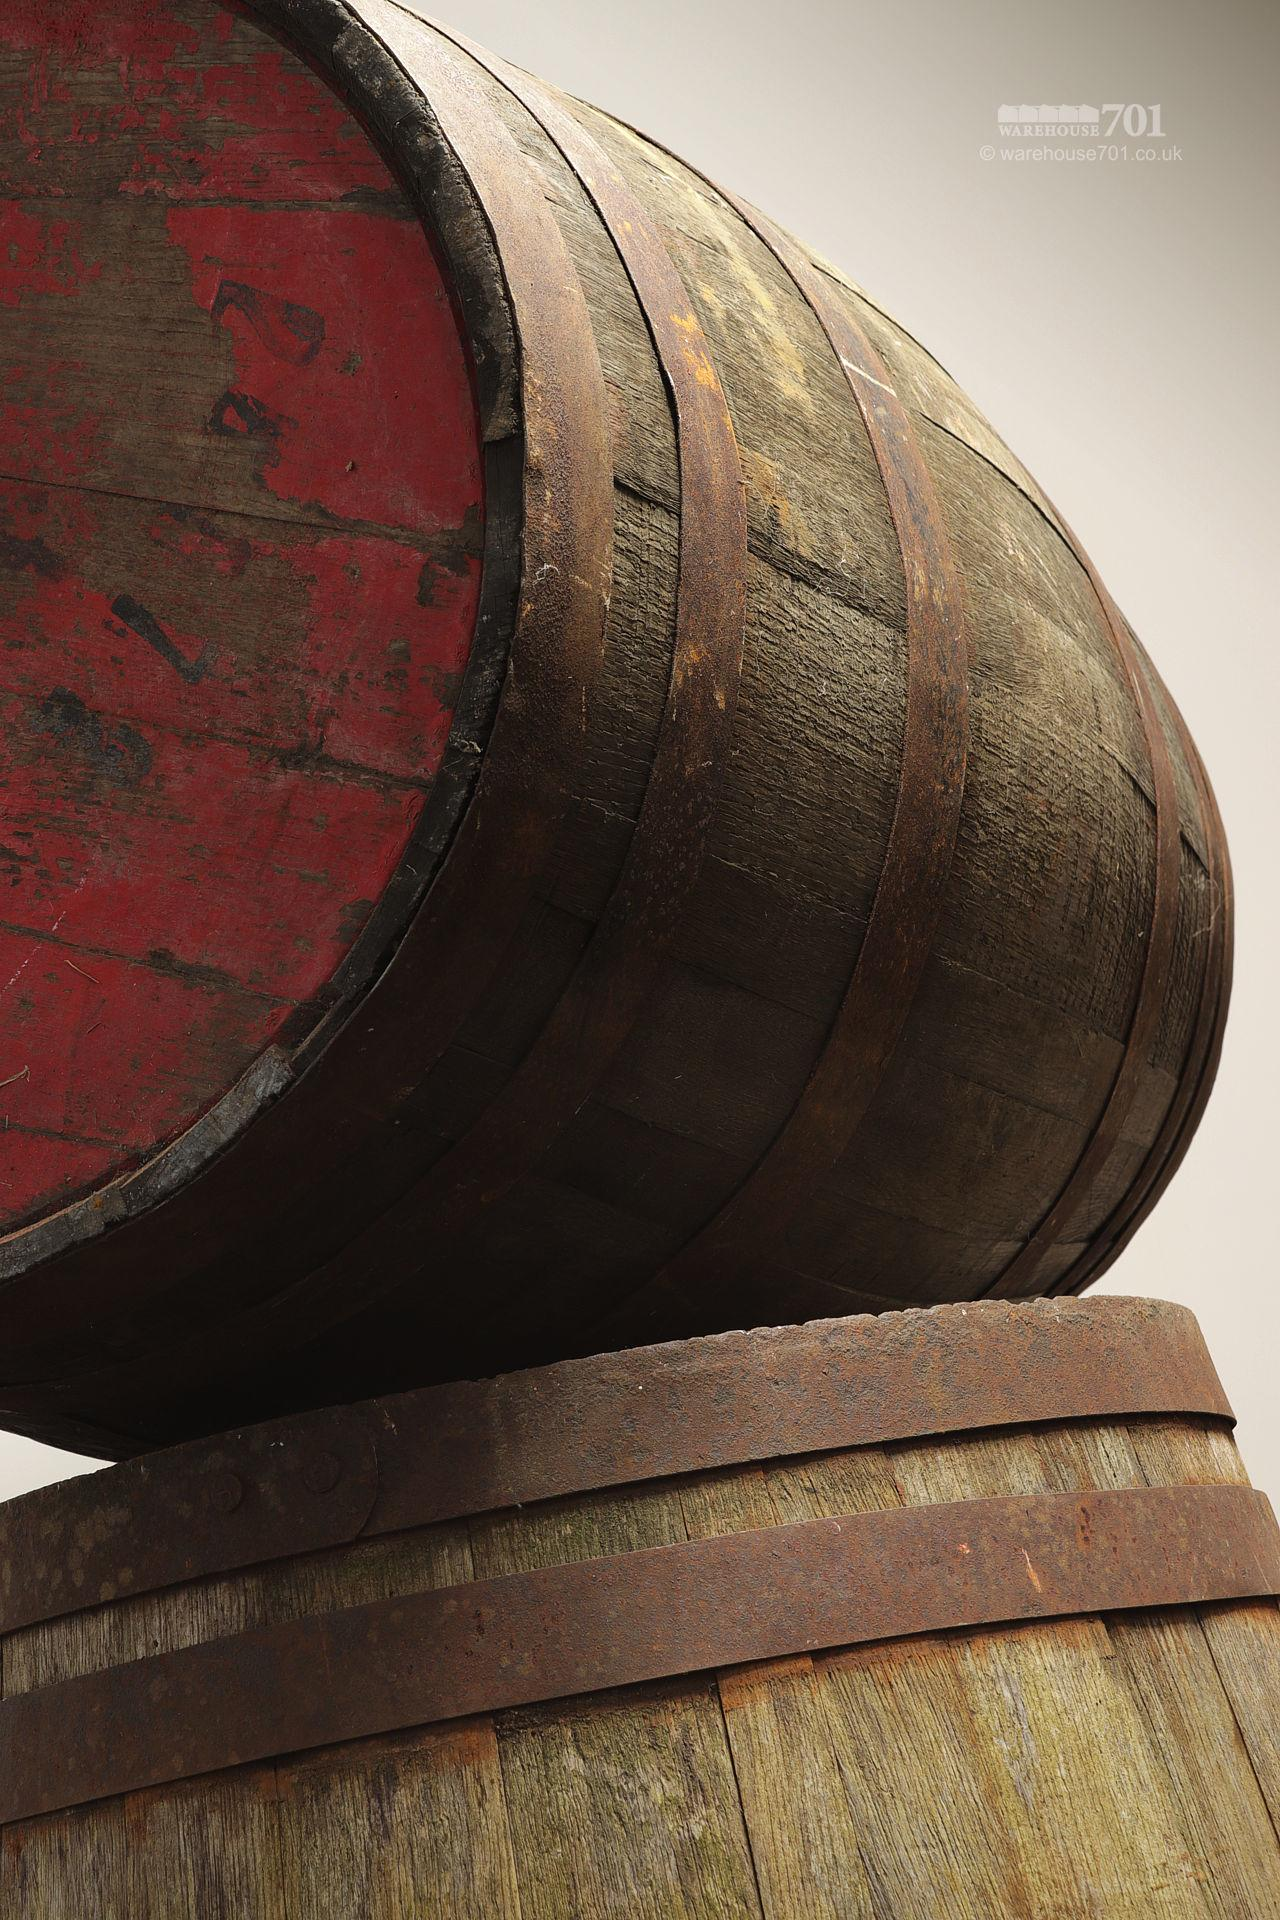 Reclaimed Solid Oak Authentic Whisky Barrels, Casks or Kegs